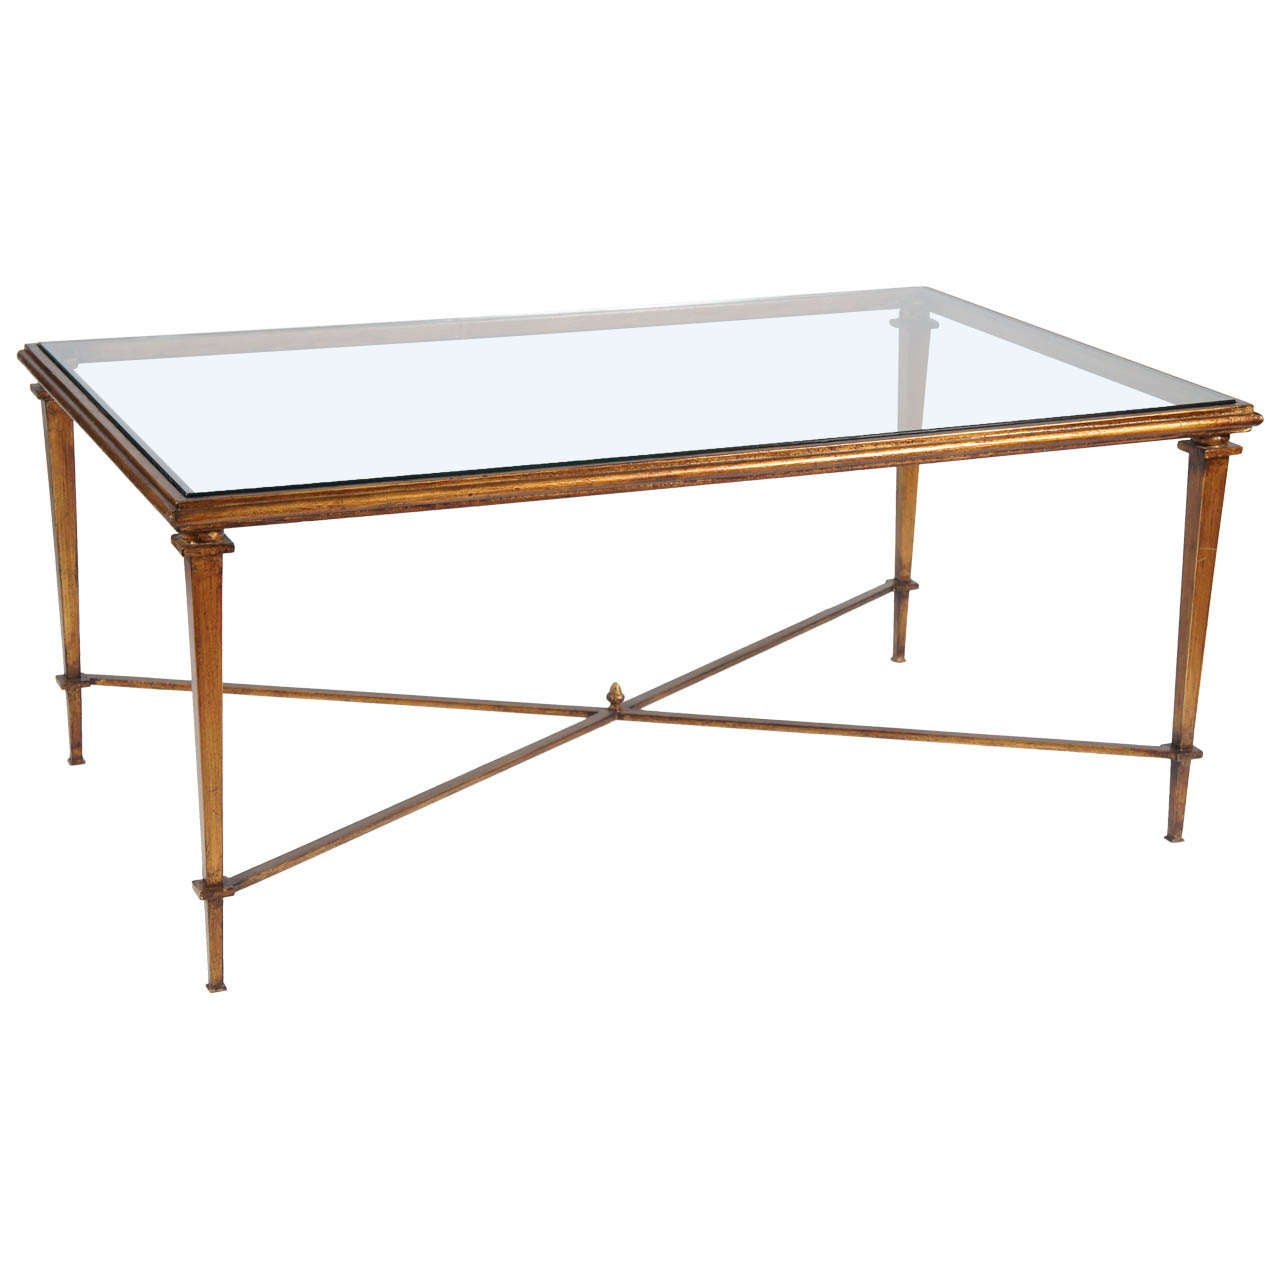 Neoclassical style metal coffee table with glass top for Vogue coffee table